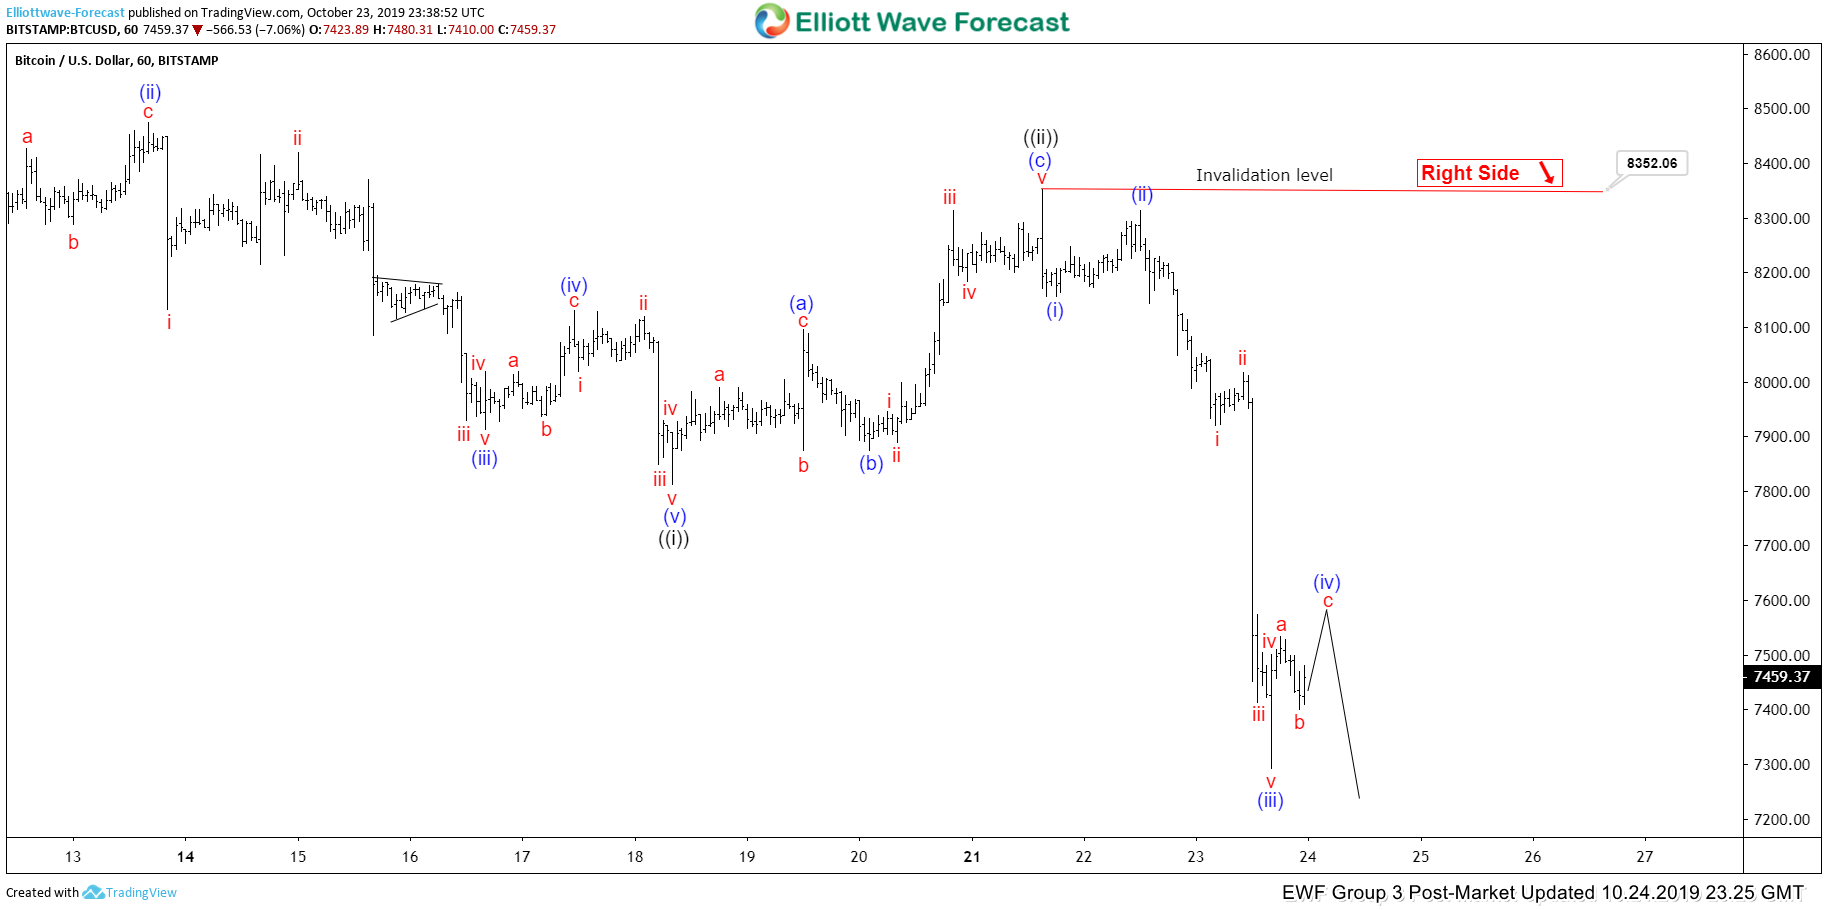 Elliott Wave View: Bitcoin Has Reached Minimum Daily Target